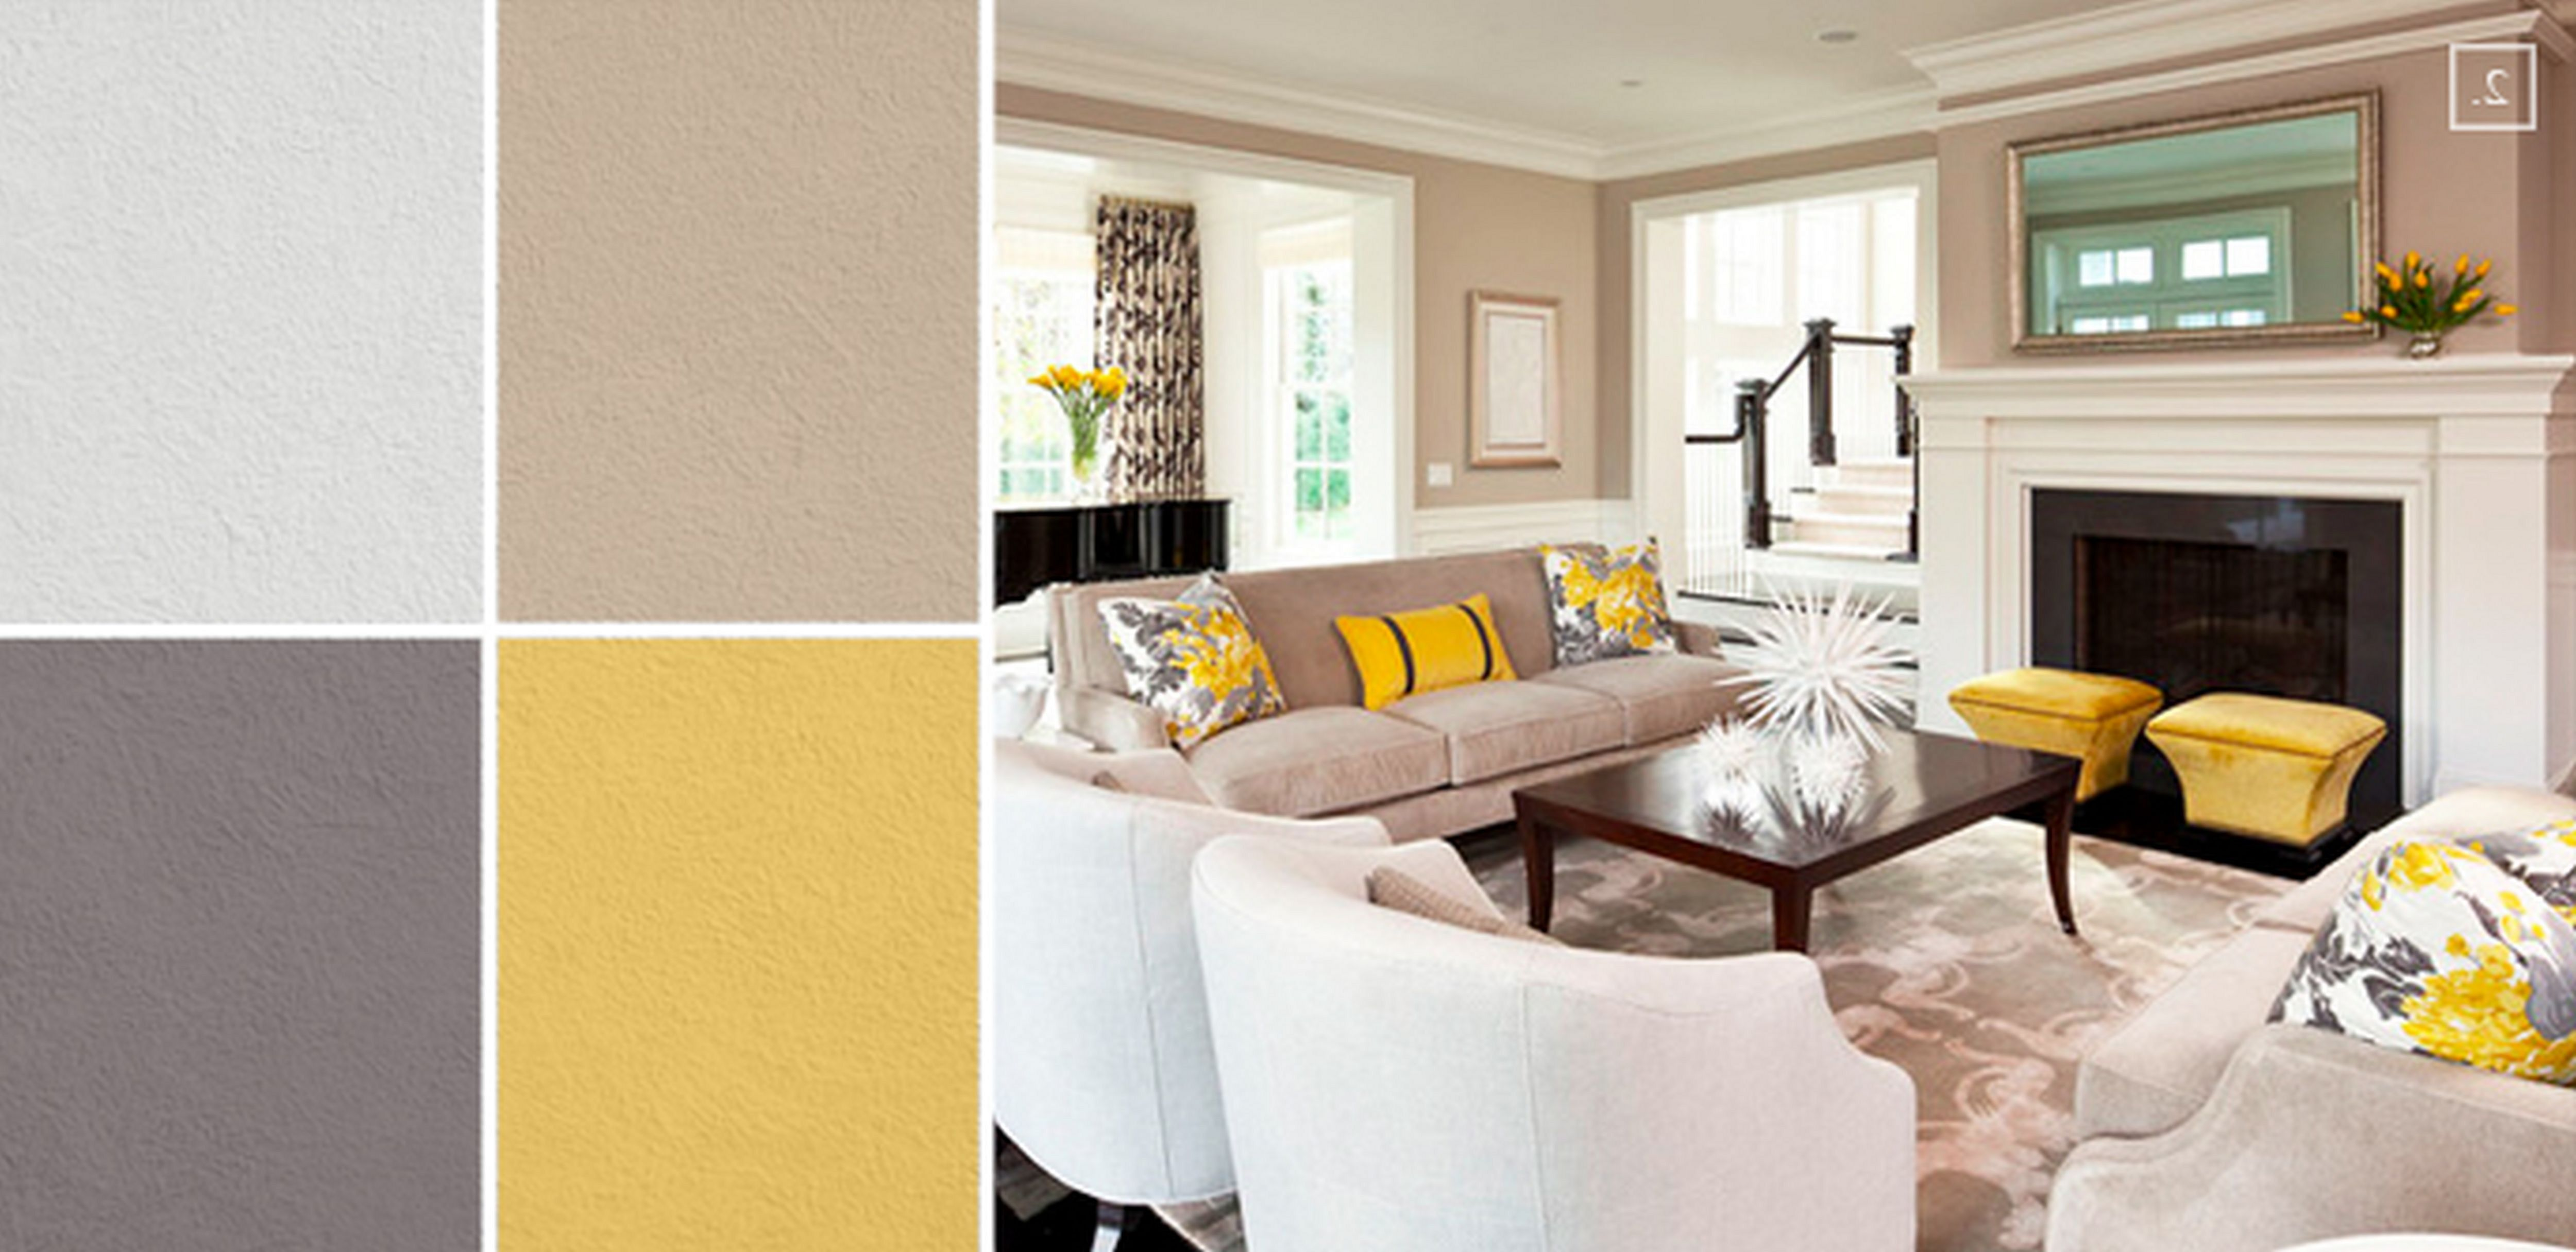 Top 12 Amazing Yellow Home Decor Ideas For Inspiration Https Decoredo